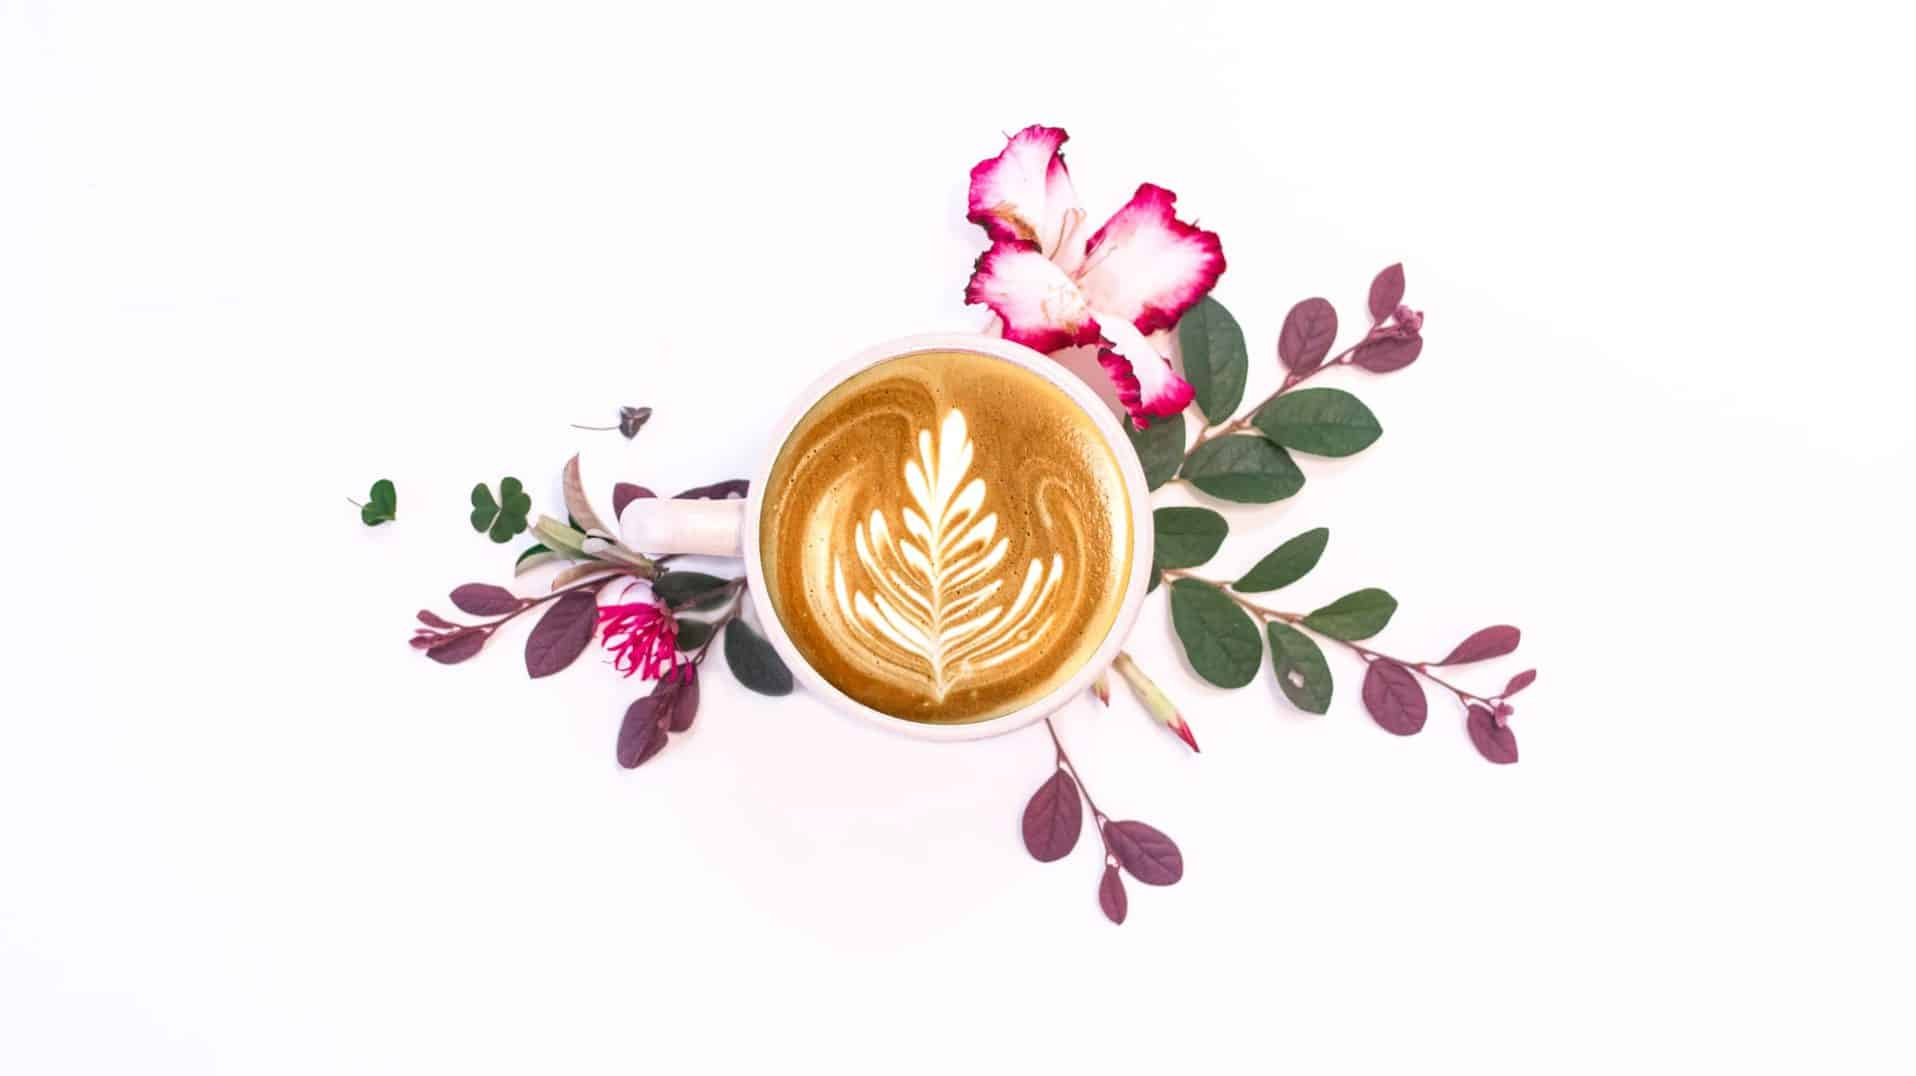 coffee and gift ideas for her